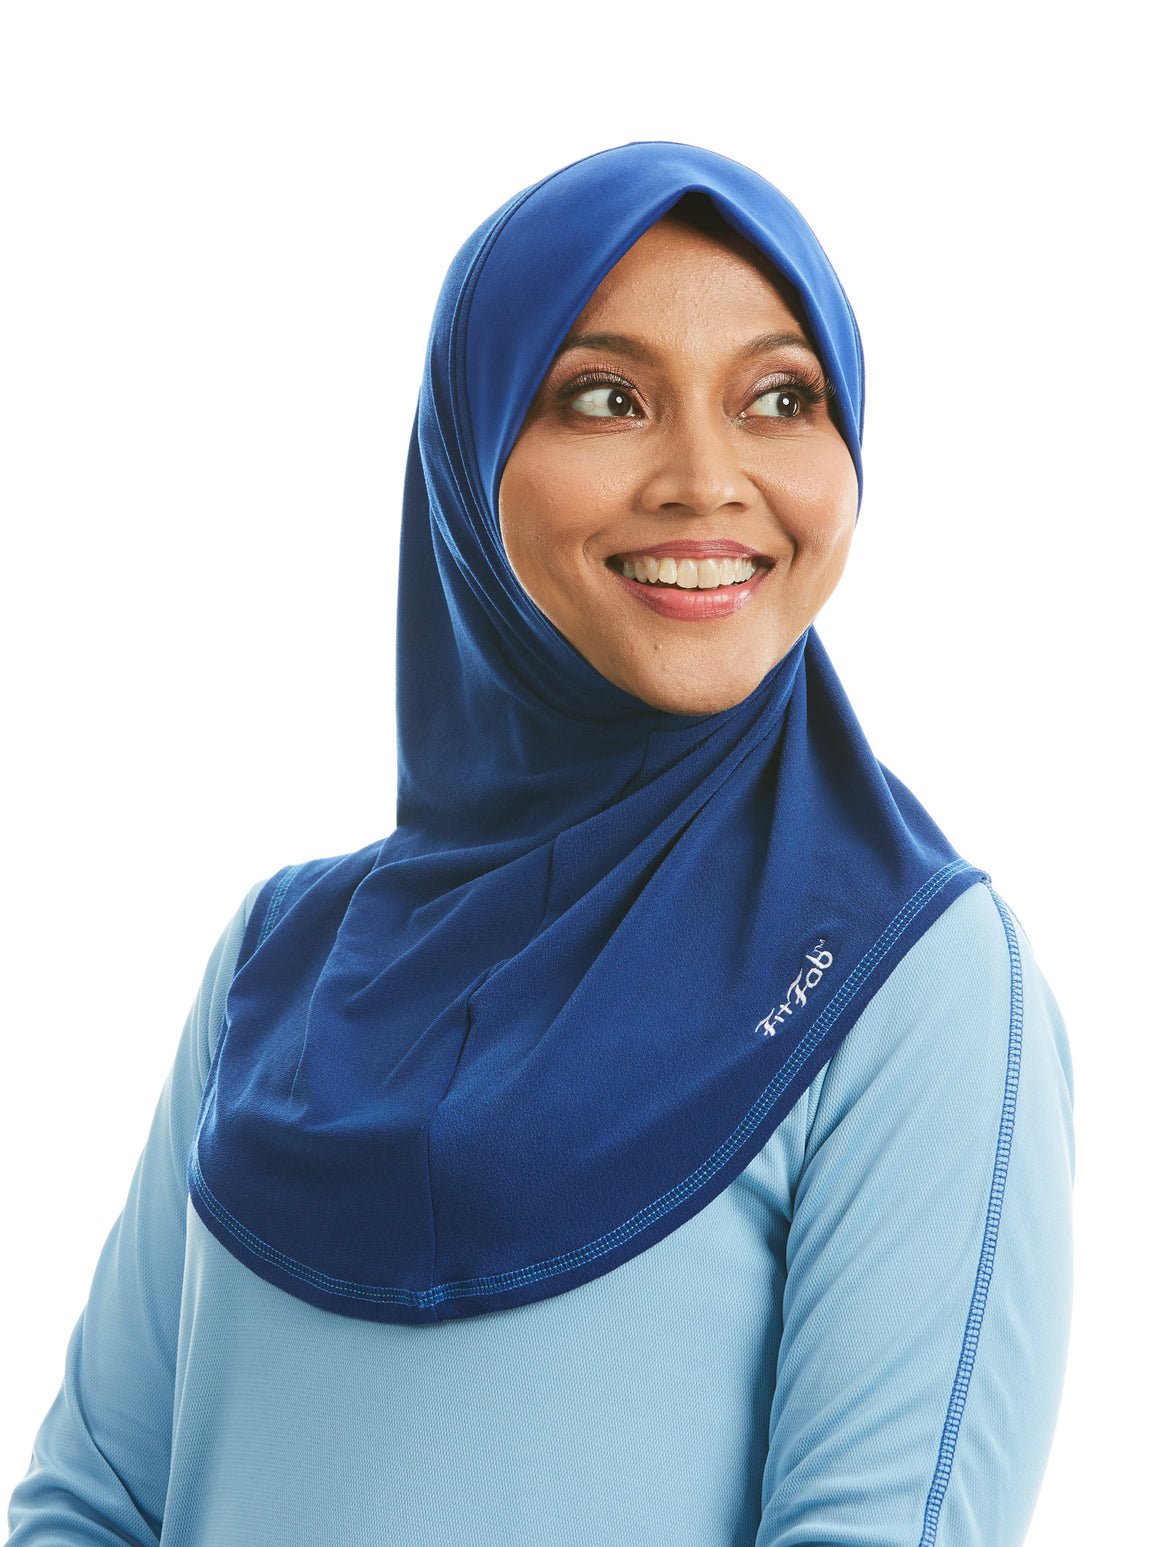 Sporty Hijab Marine Cobalt with Awning